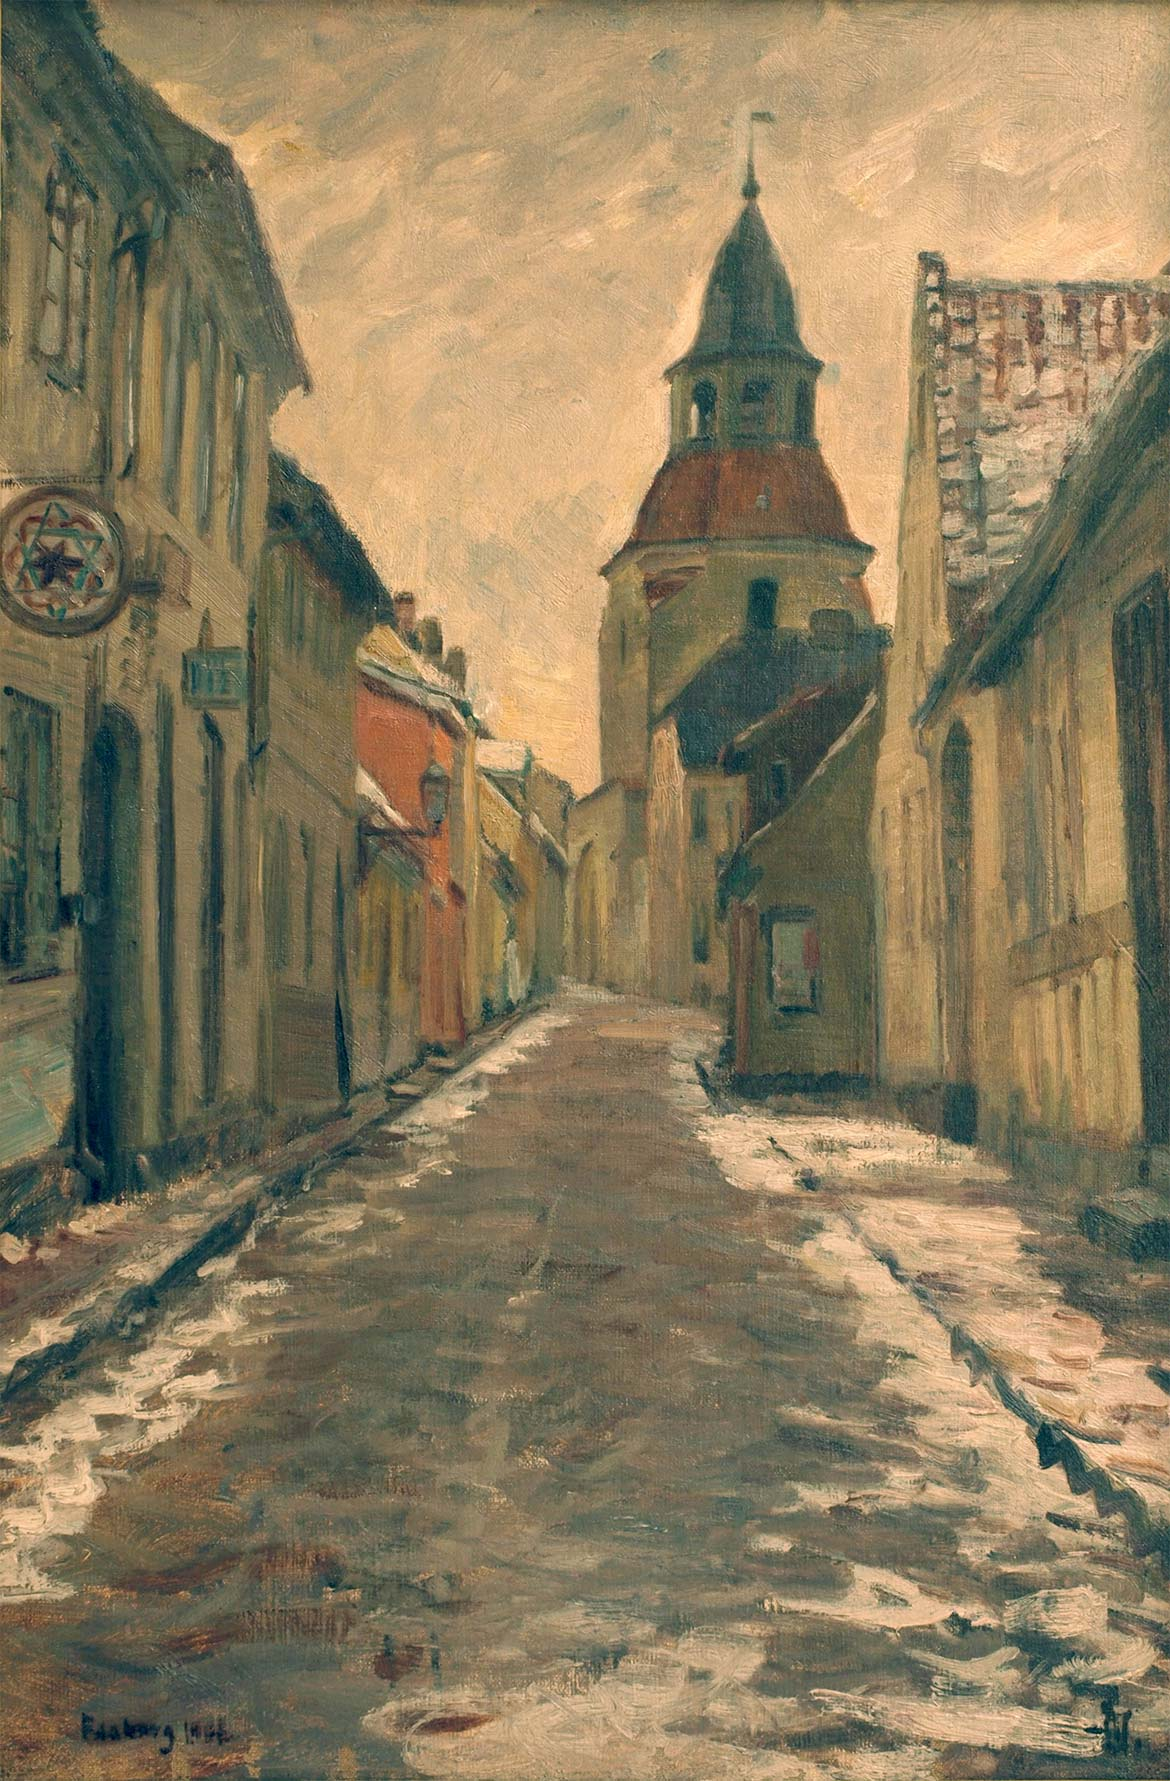 Albert Gottschalk, The Bell Tower. Faaborg, 1901. Faaborg Museum.